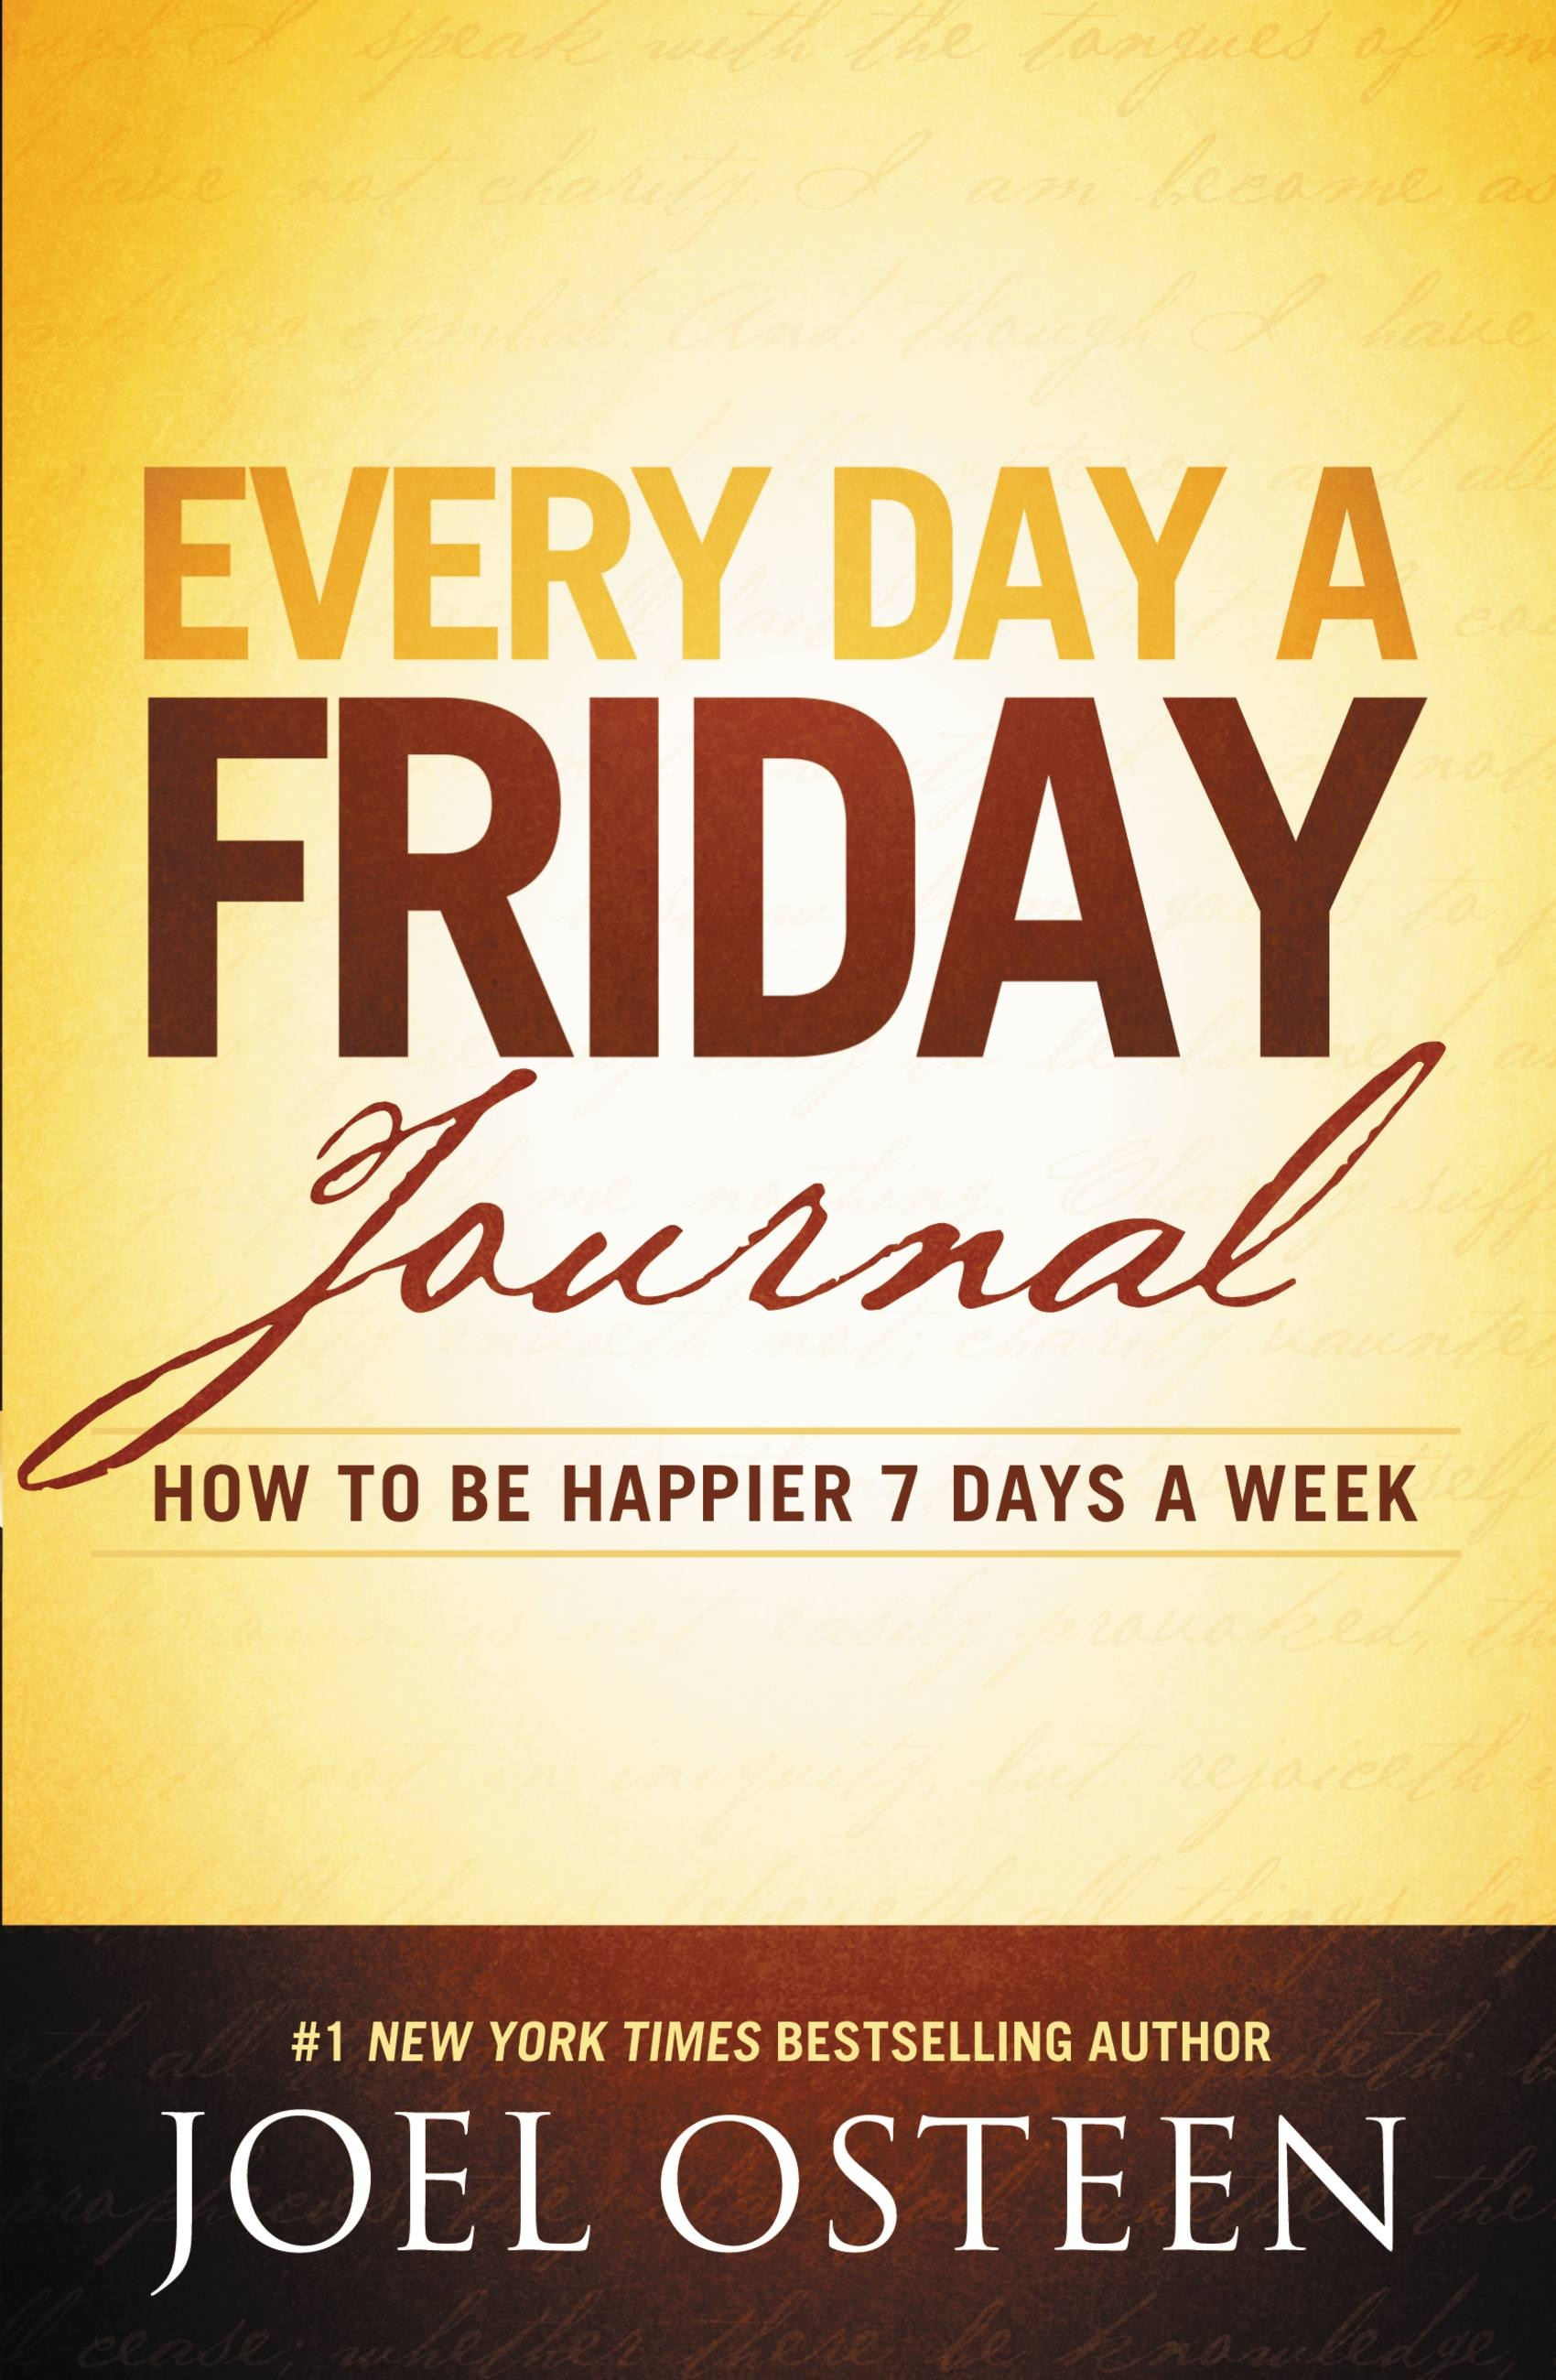 Every Day a Friday Journal